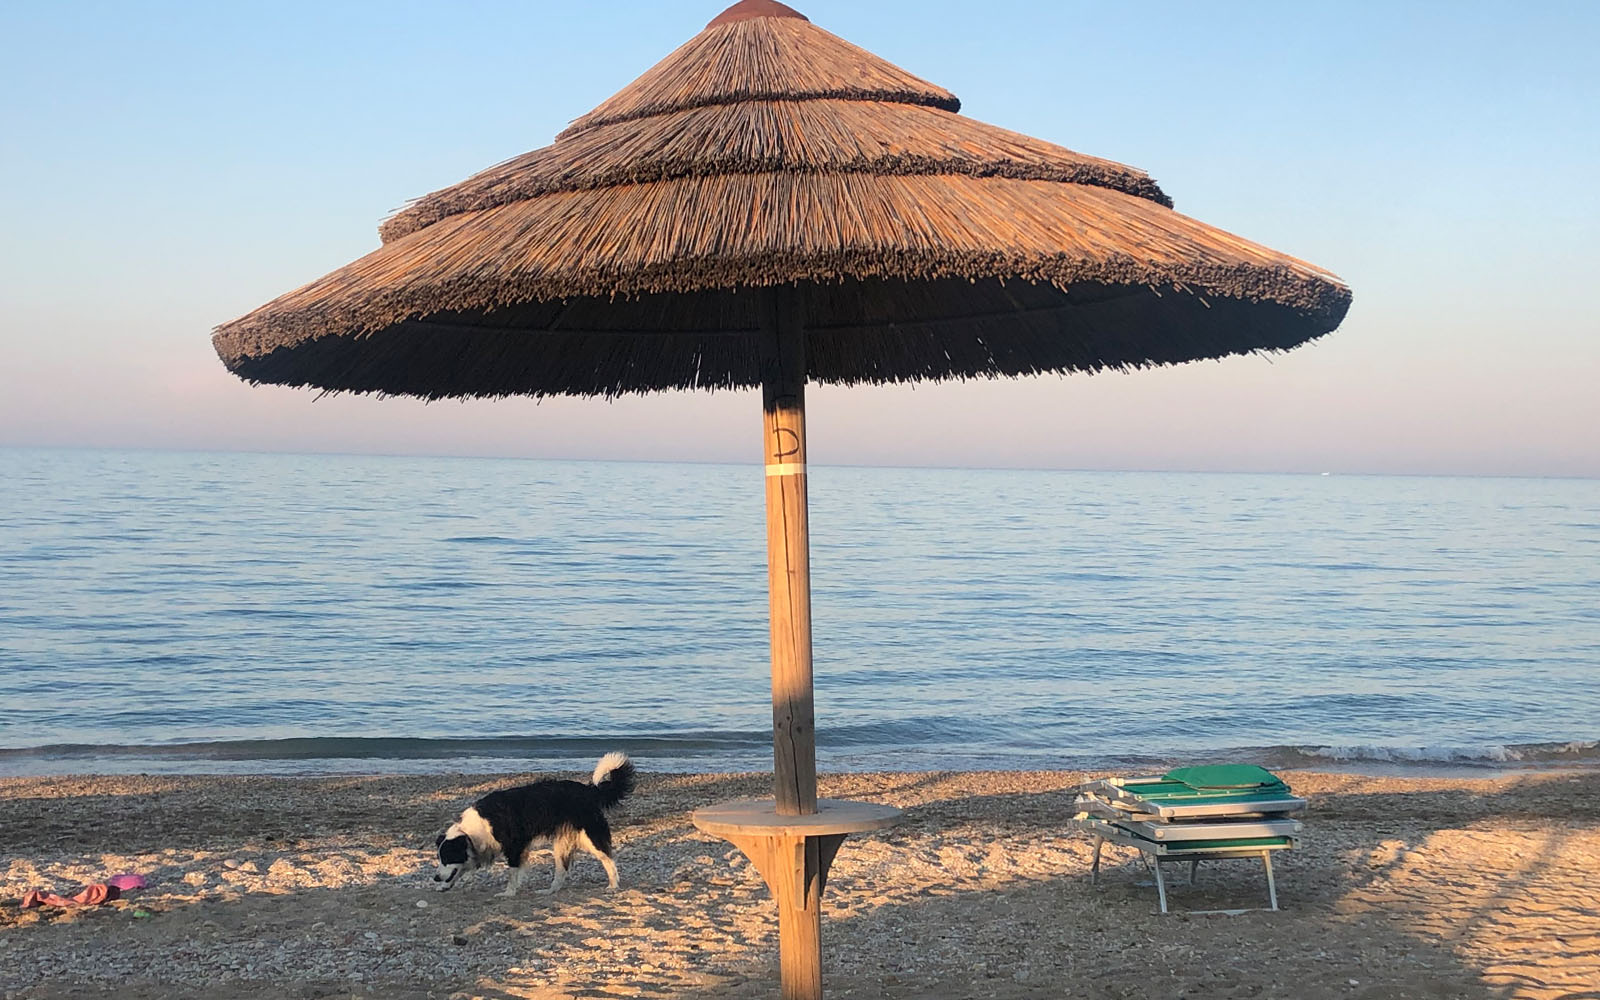 La spiaggia dog-friendly VirgolaZero1 di Civitanova Marche.